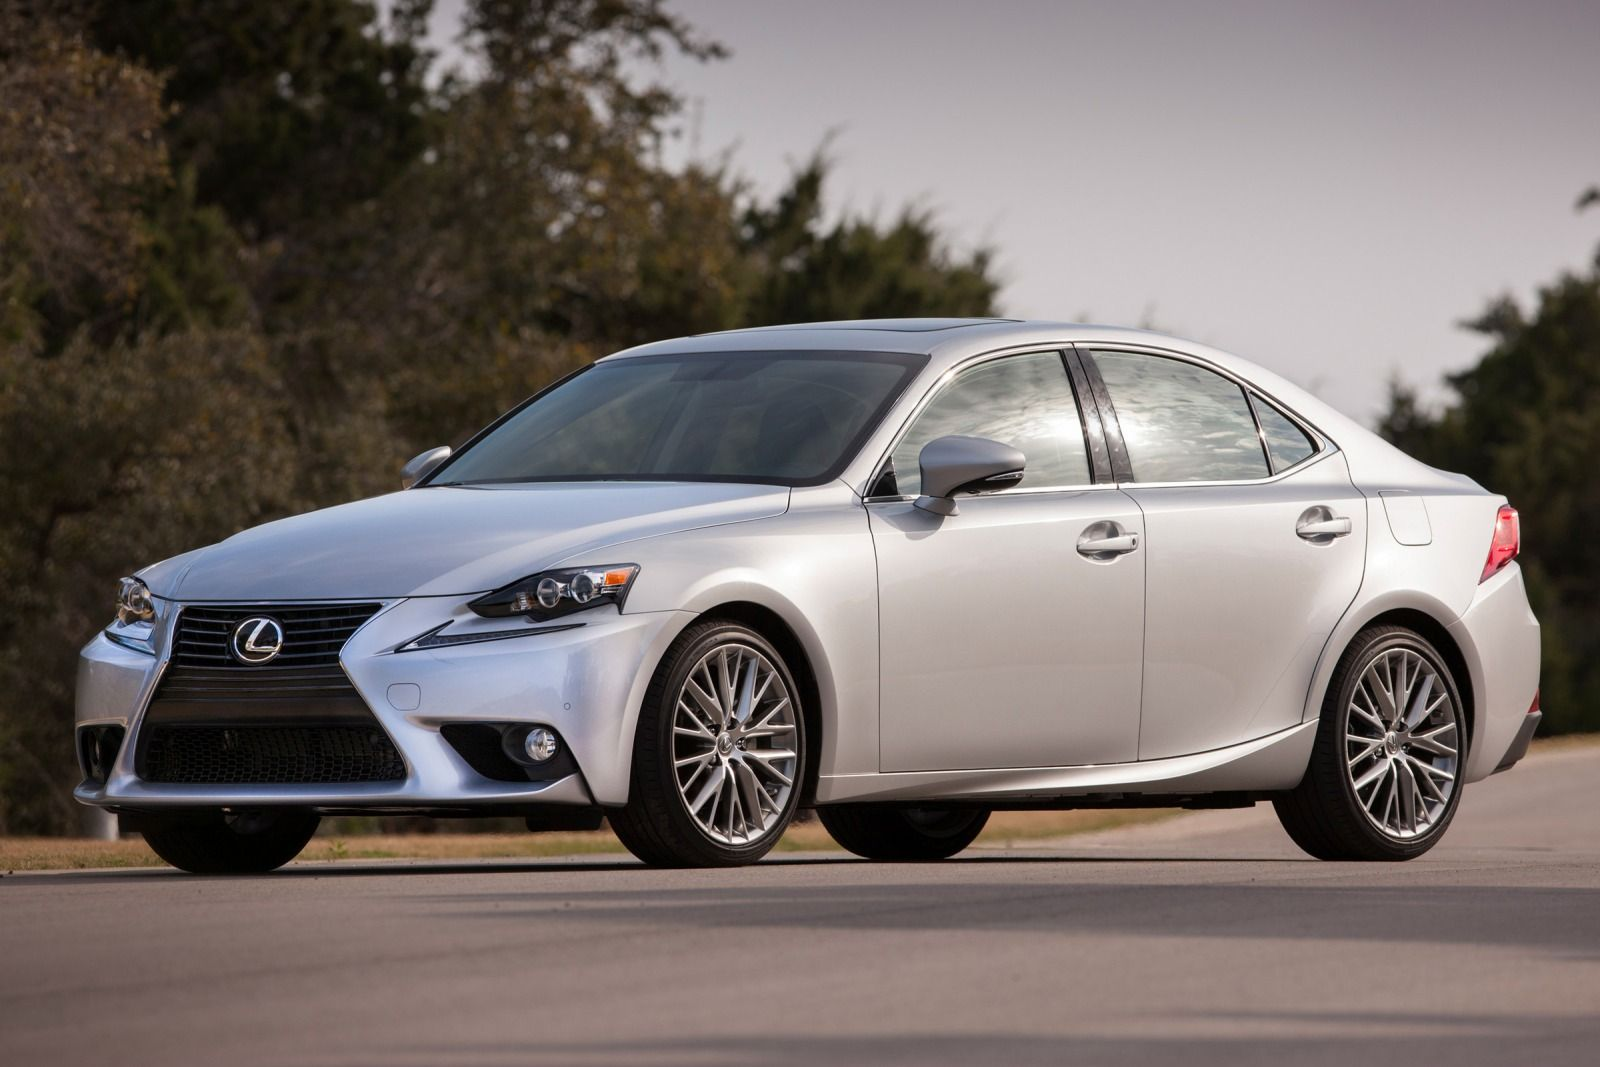 2015 Lexus Is 250 #13